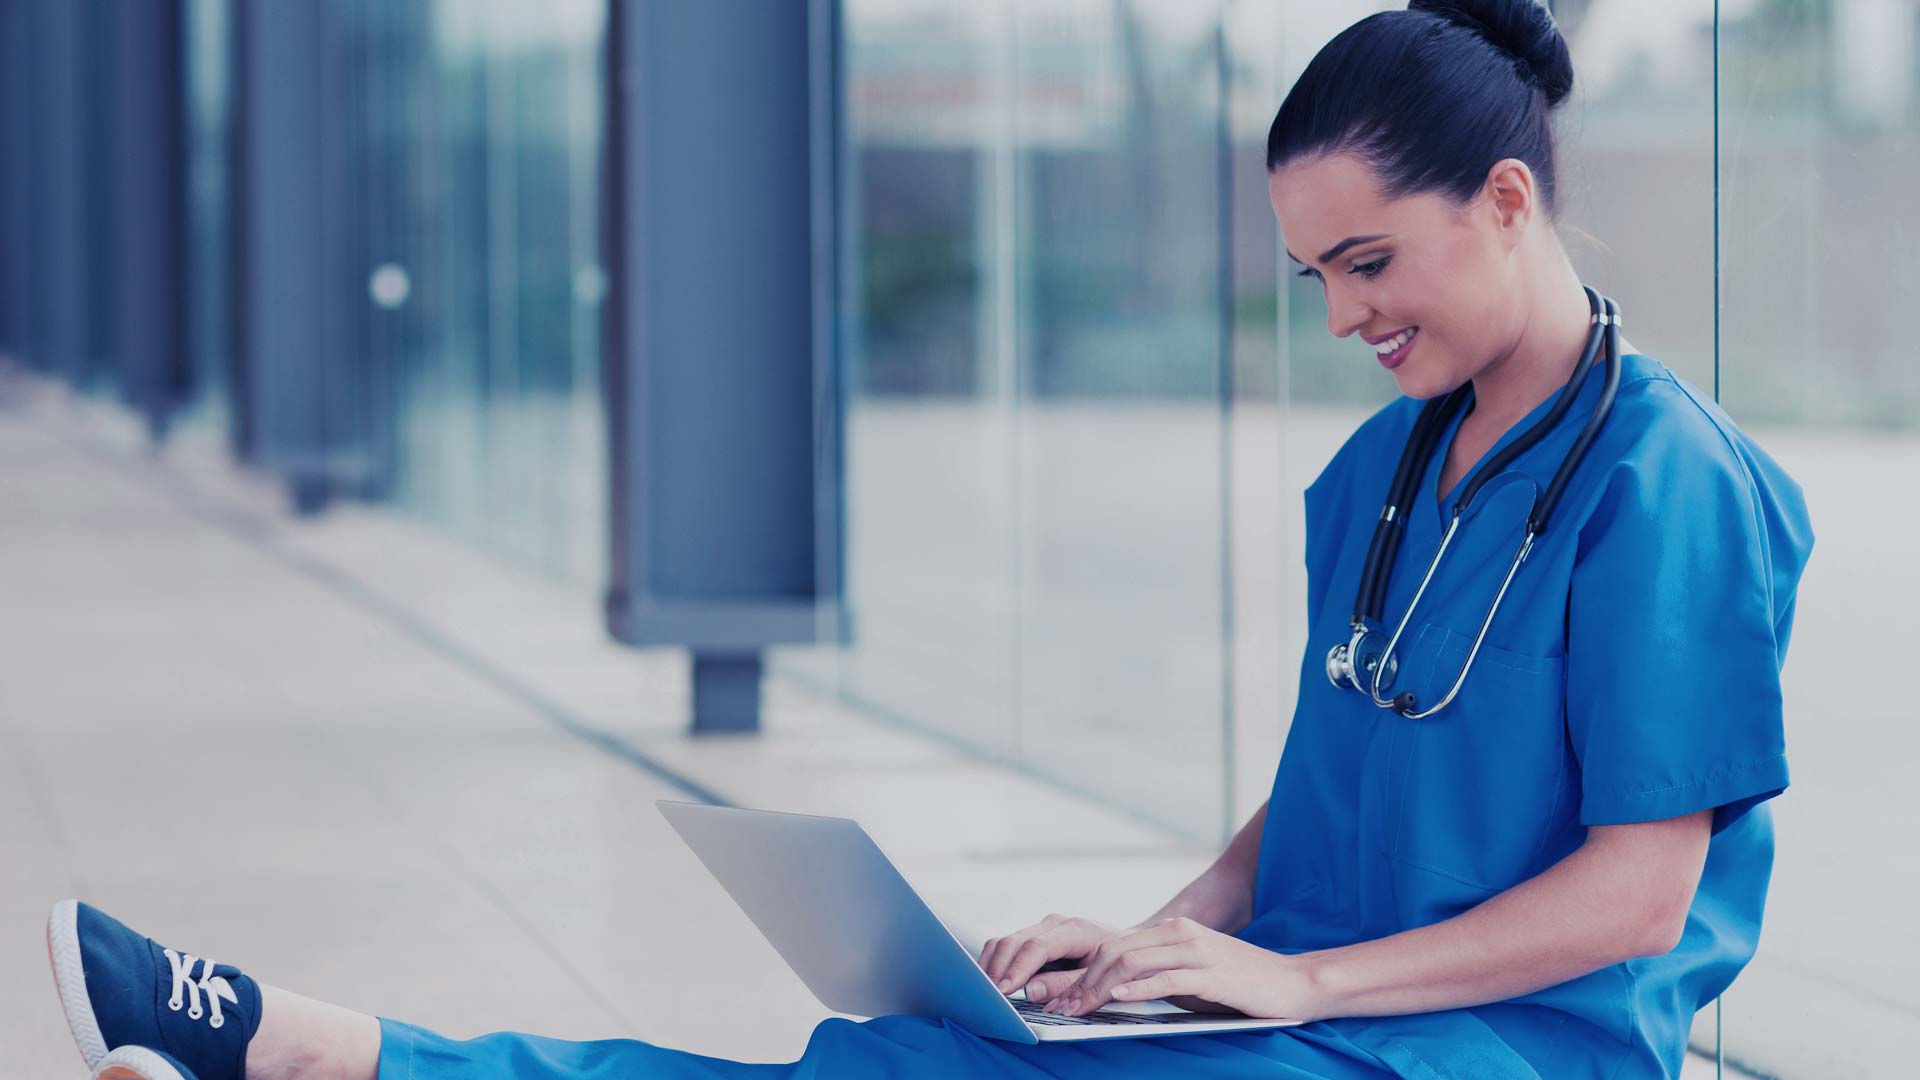 10 quick tips for nurse networking on linkedin